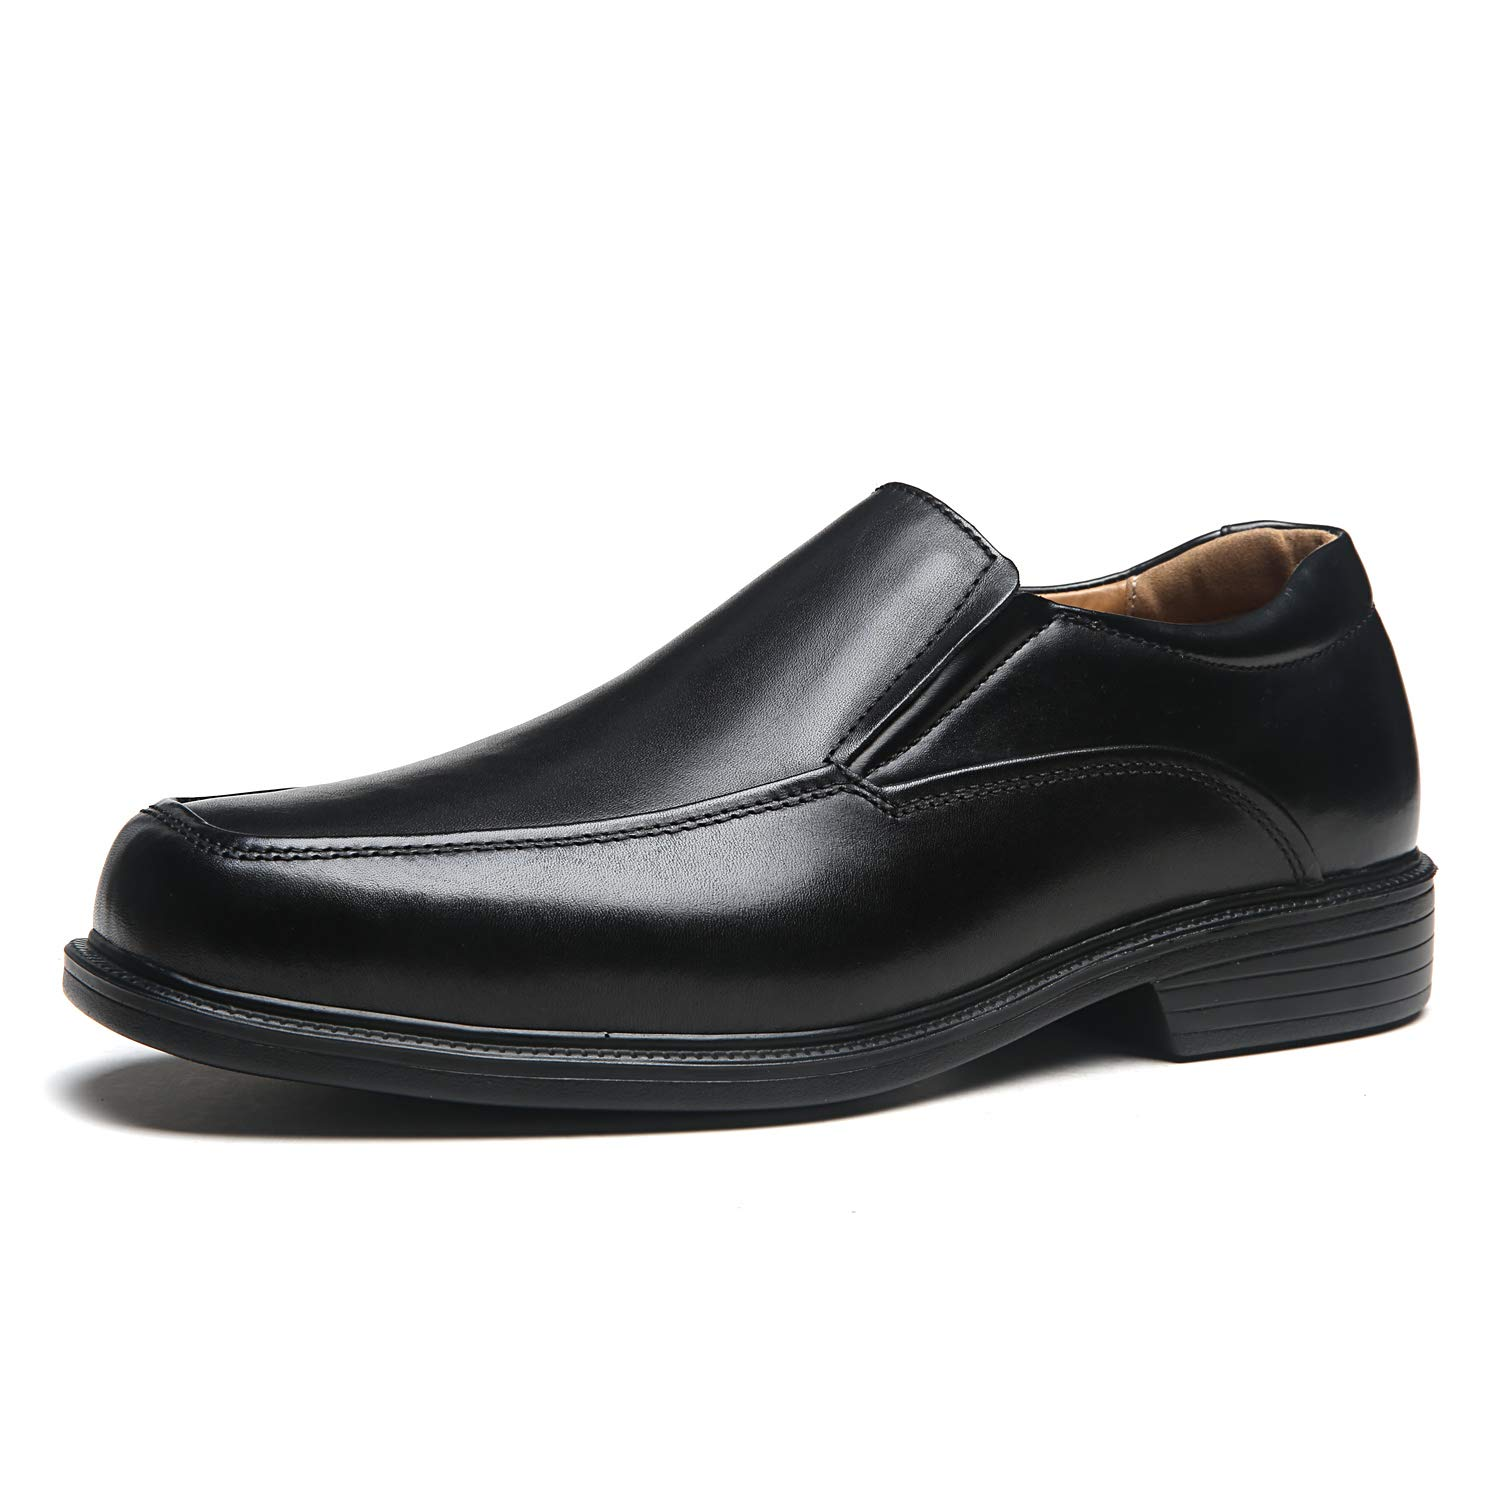 Leather Dress Shoes Slip